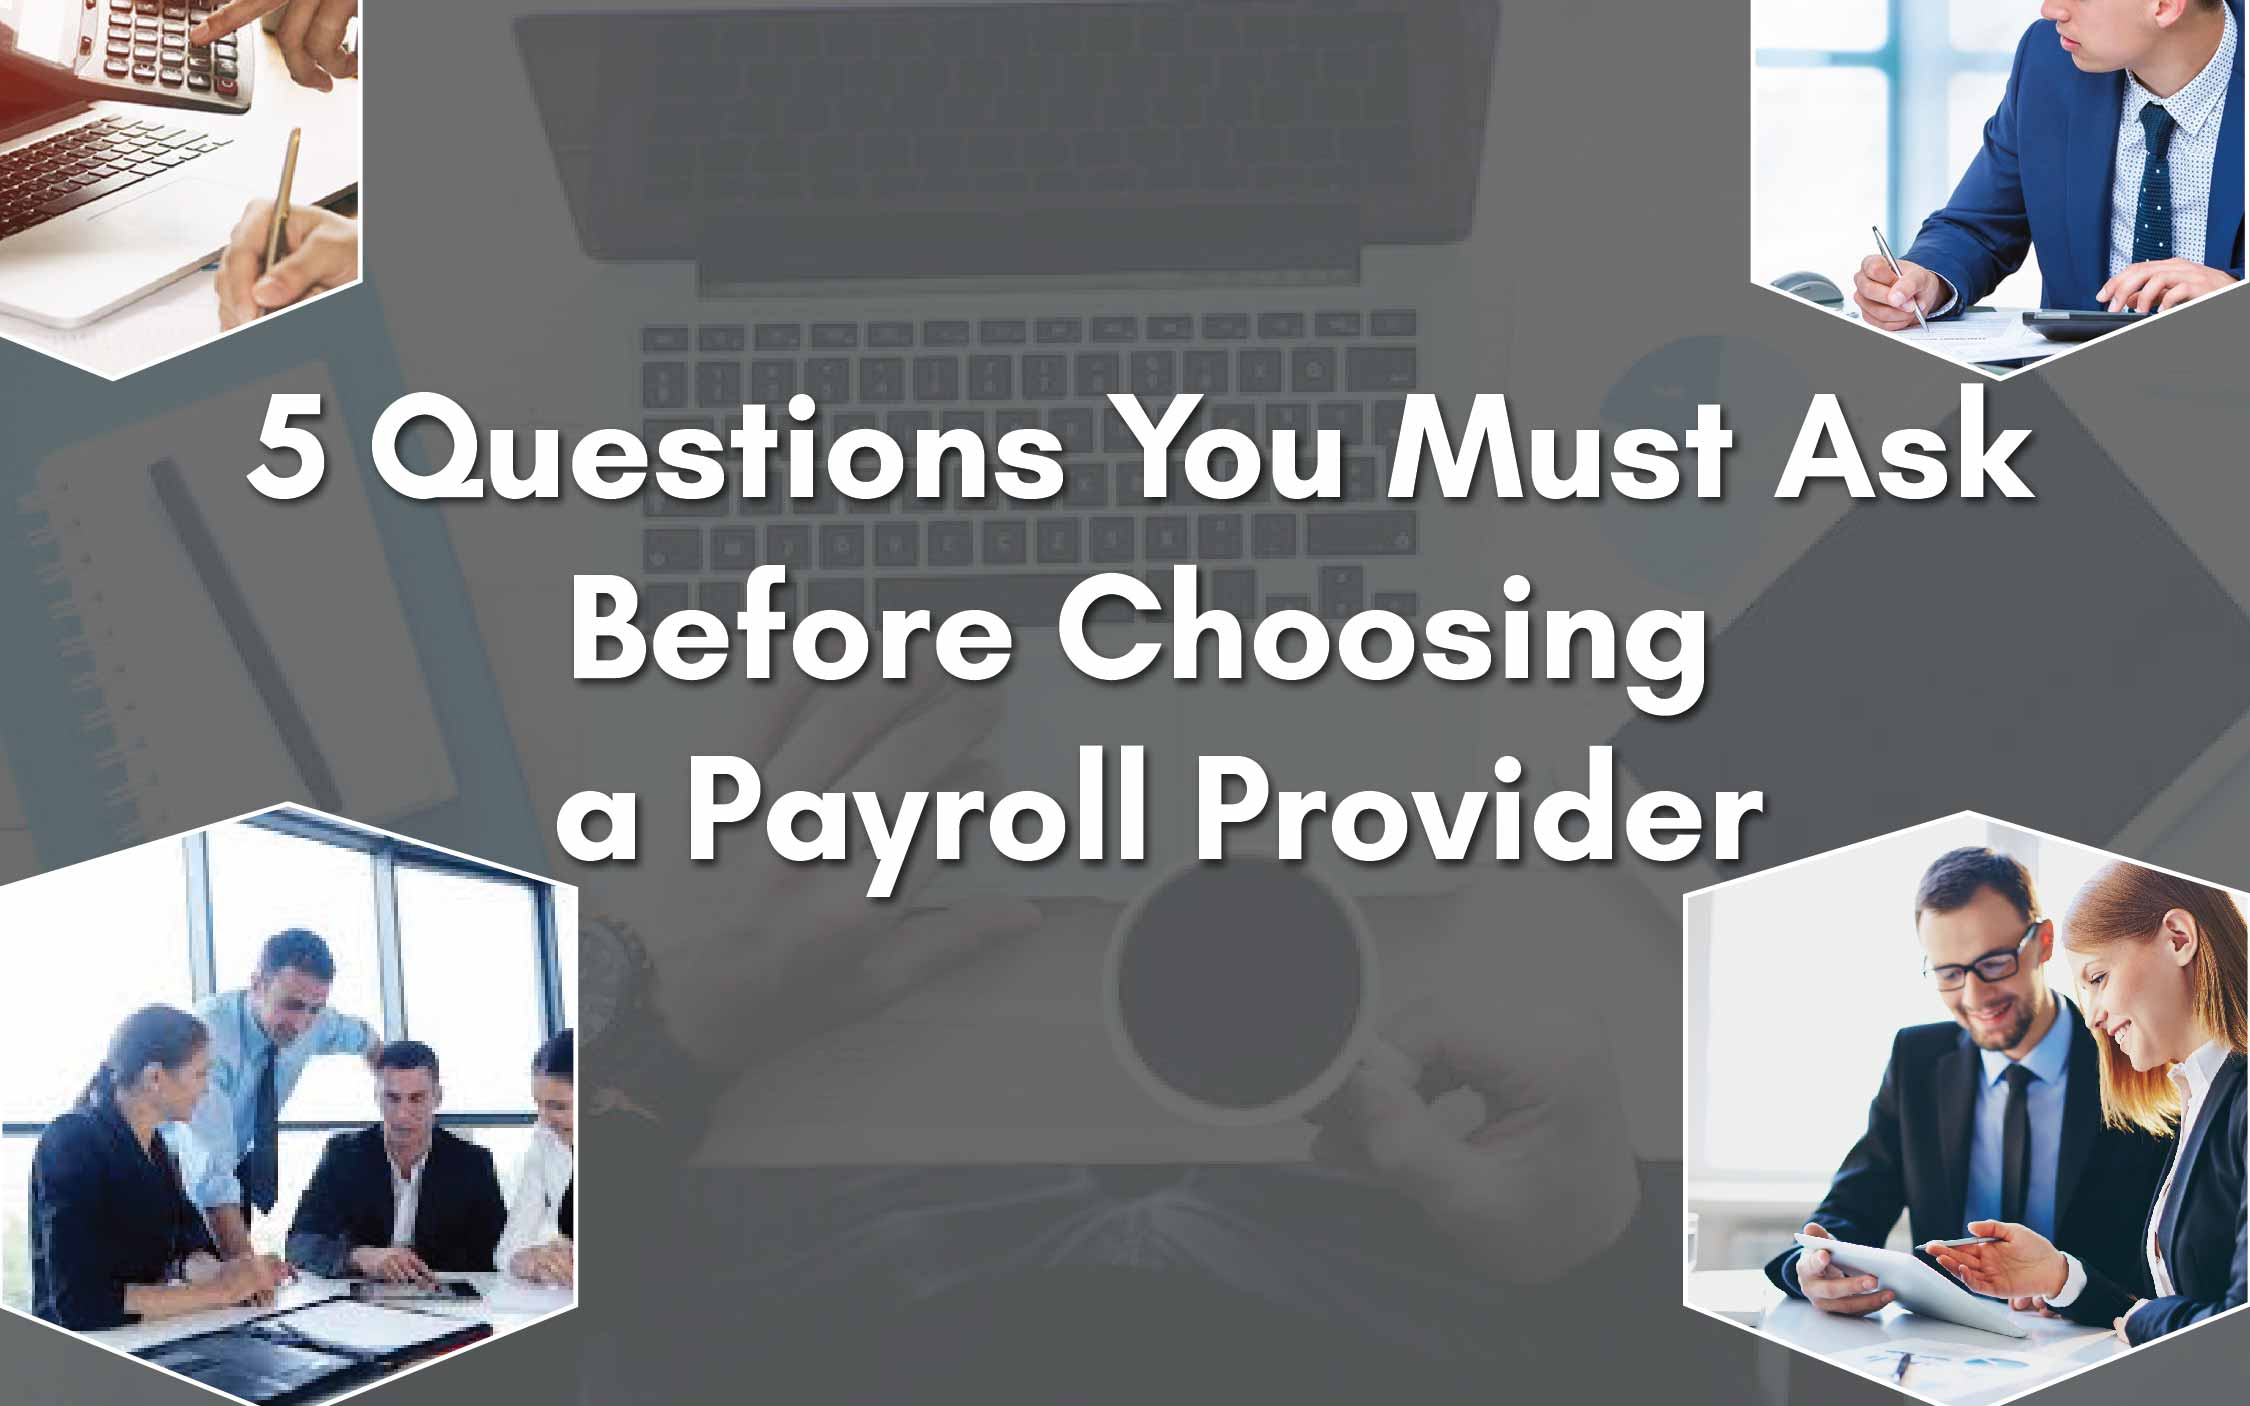 Things to ask before choosing a payroll provider